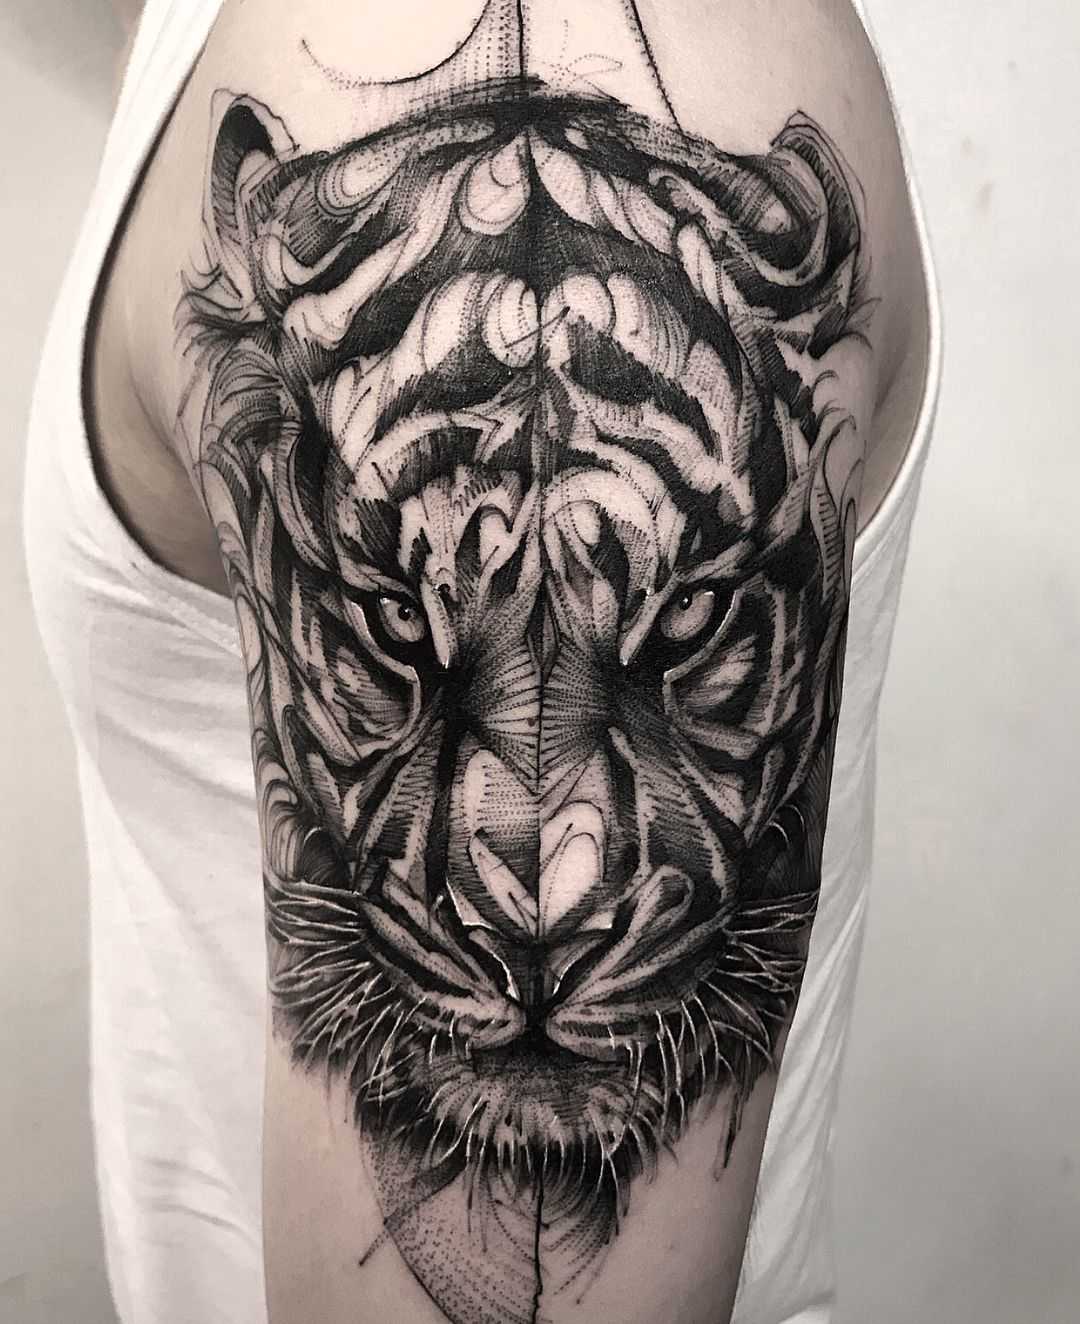 11ec485ae08ab Tiger Tattoos Meaning and Design Ideas | Tiger Tattoo Ideas | Tiger ...